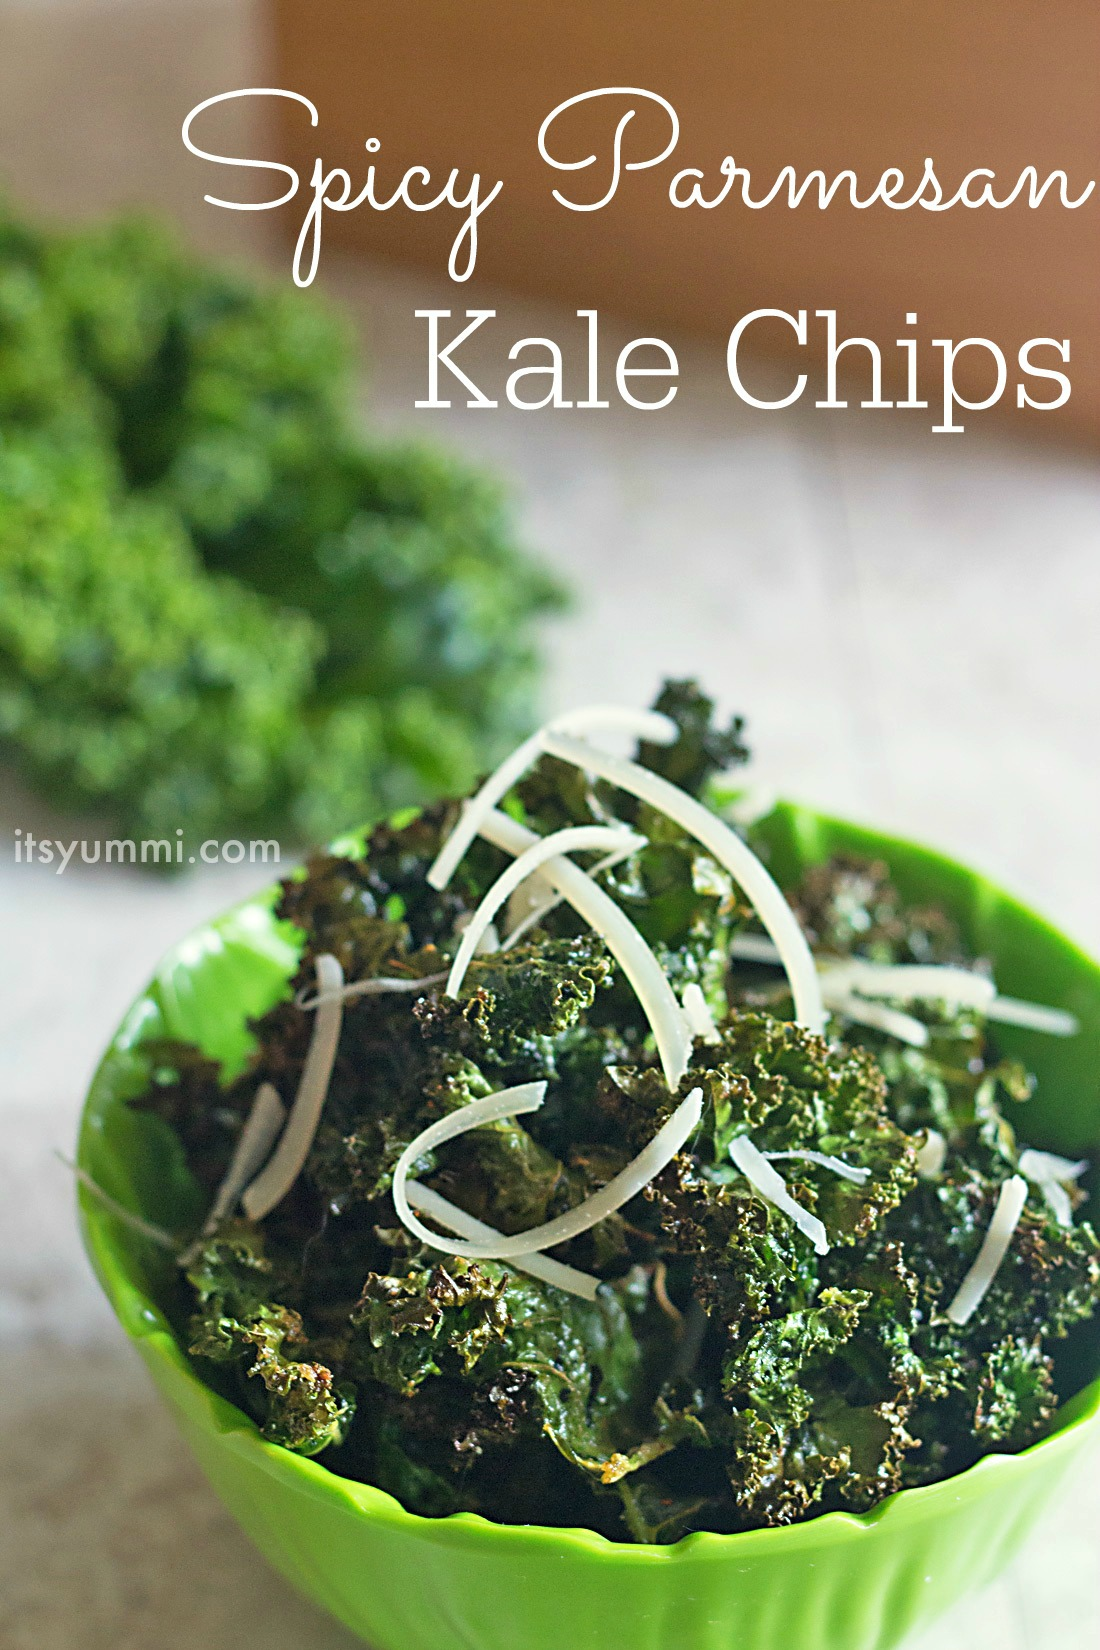 Spicy Parmesan Kale Chips from ItsYummi.com